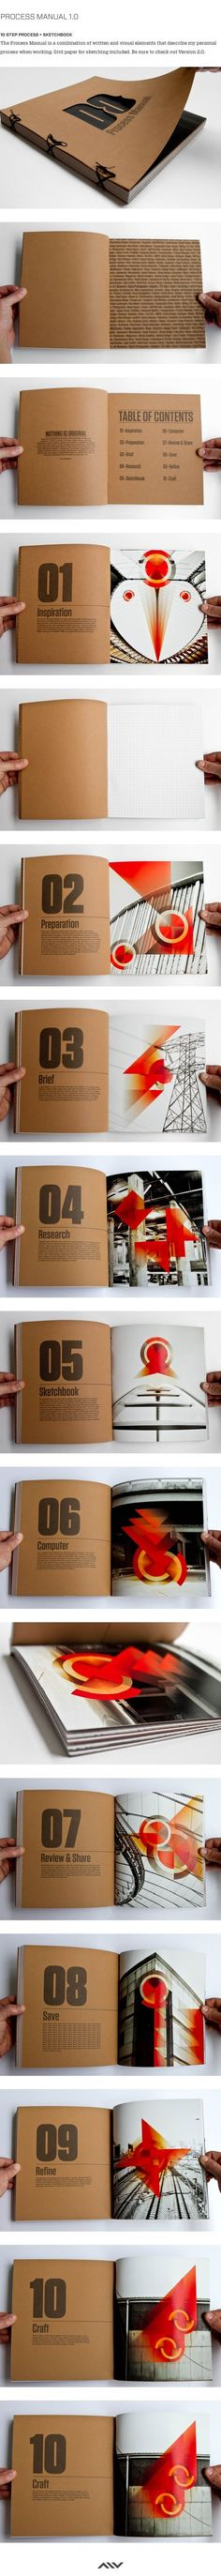 Great idea for printed graphic design portfolio. The color pops on the recycled cardstock. The table of contents is genius because it guides the reader through your work.